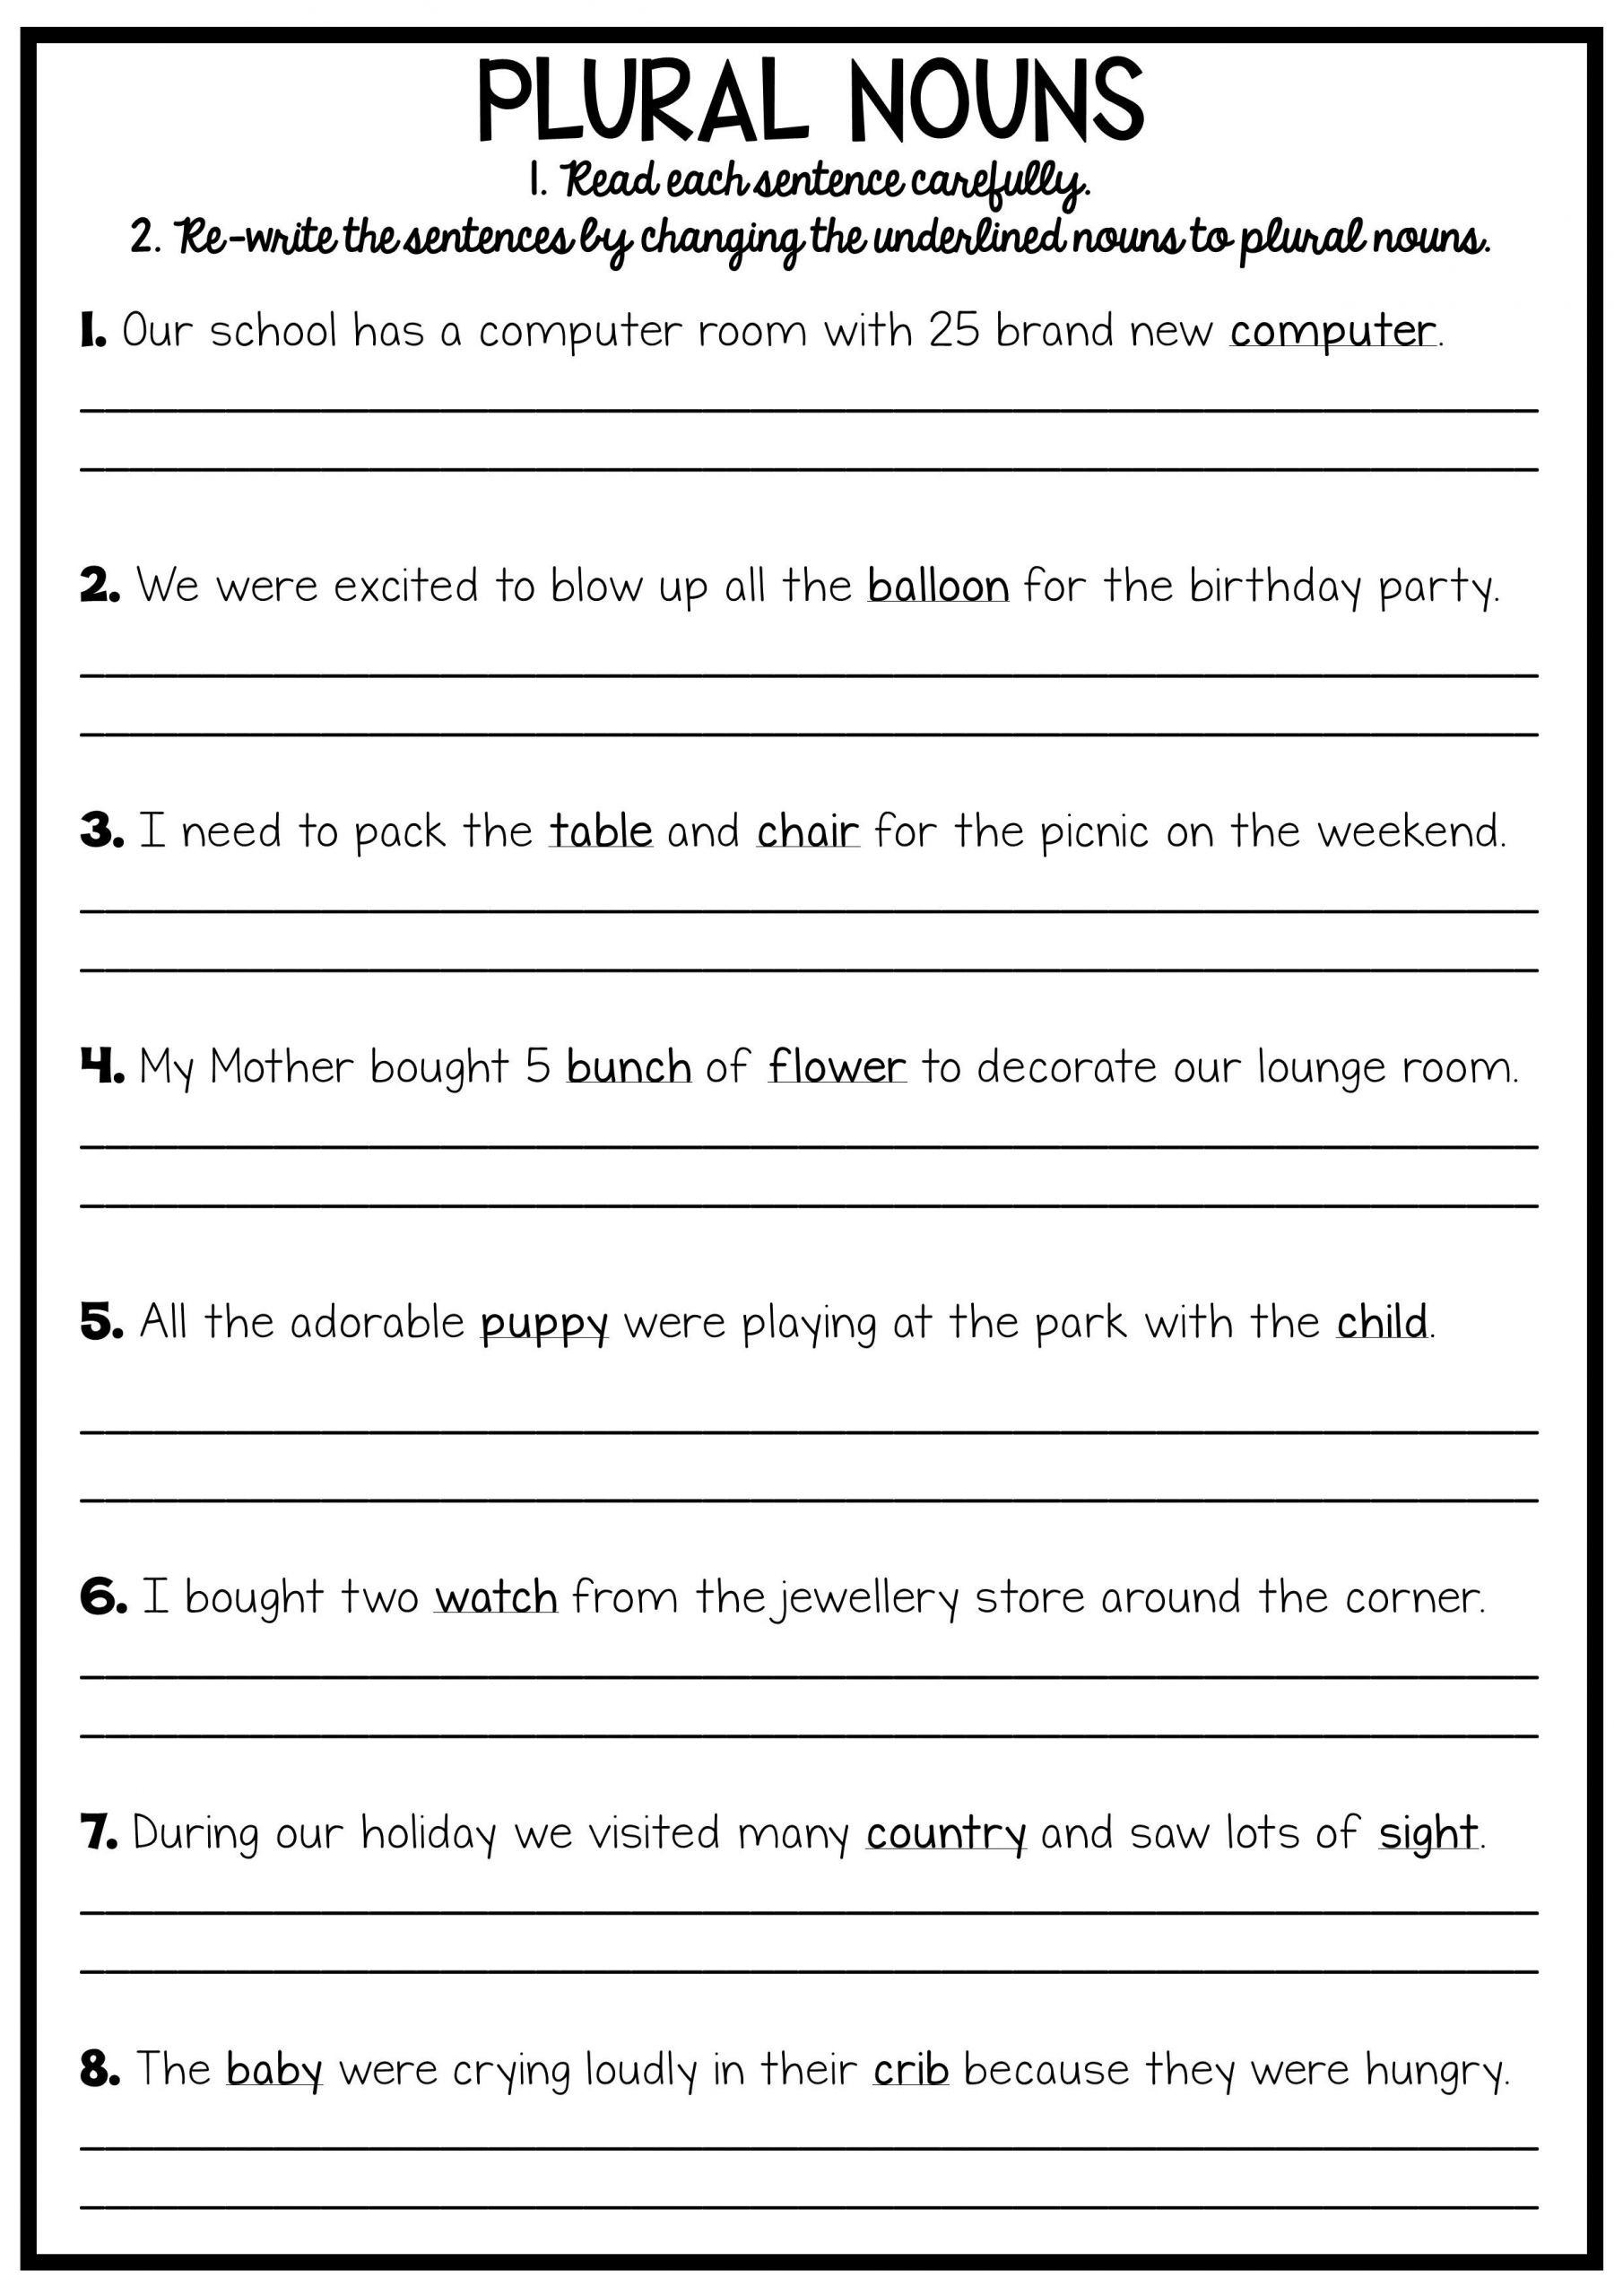 Grammar Worksheet 5th Grade Grammar Worksheets 8th Grade English Printable Reading